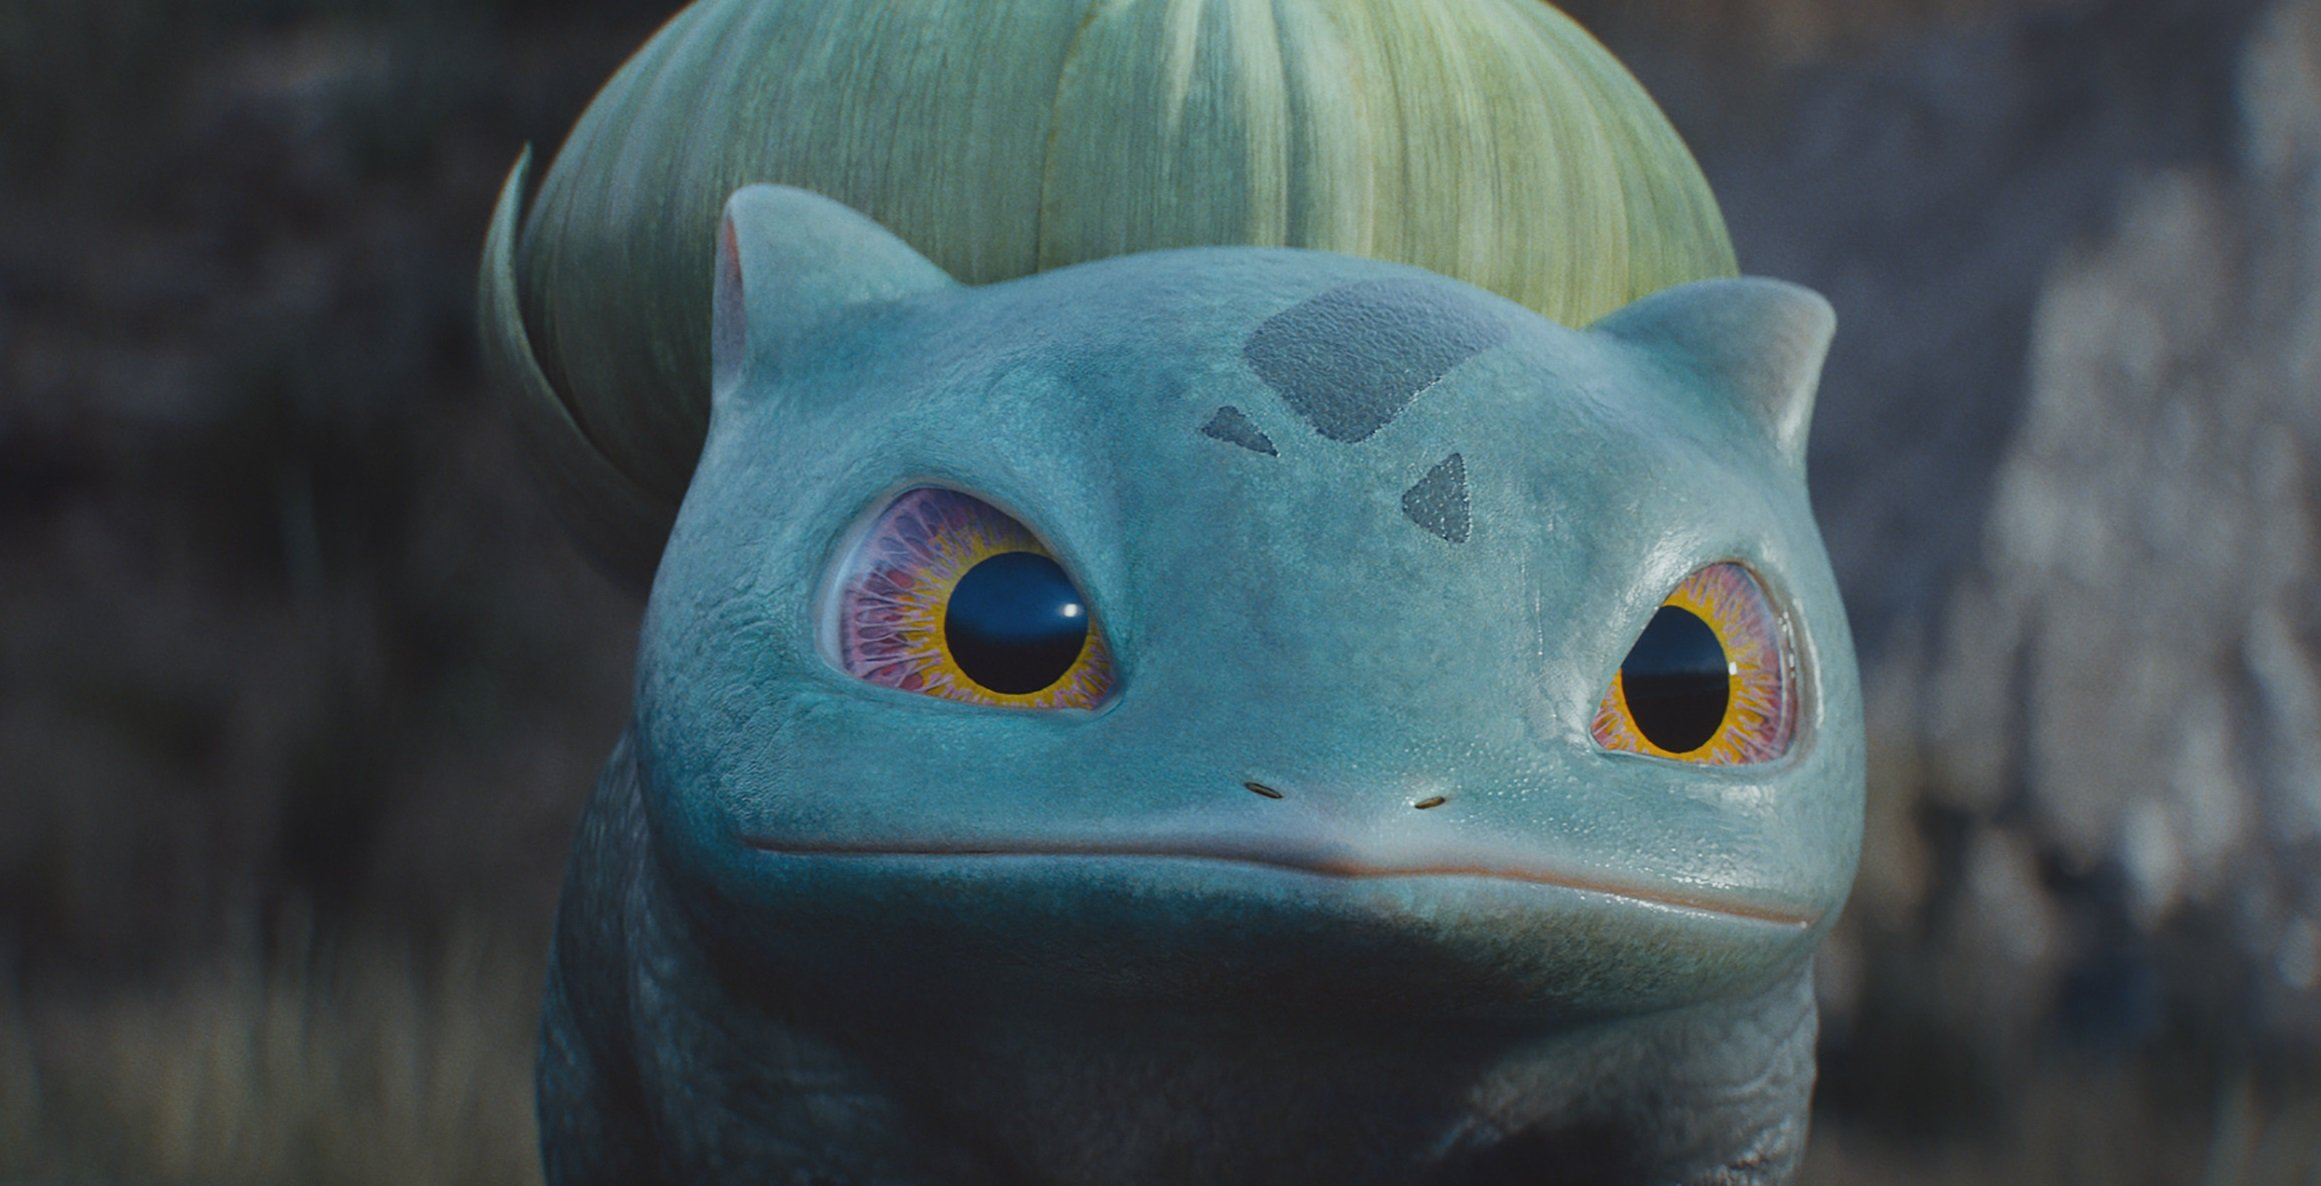 When can you watch Detective Pikachu at home?